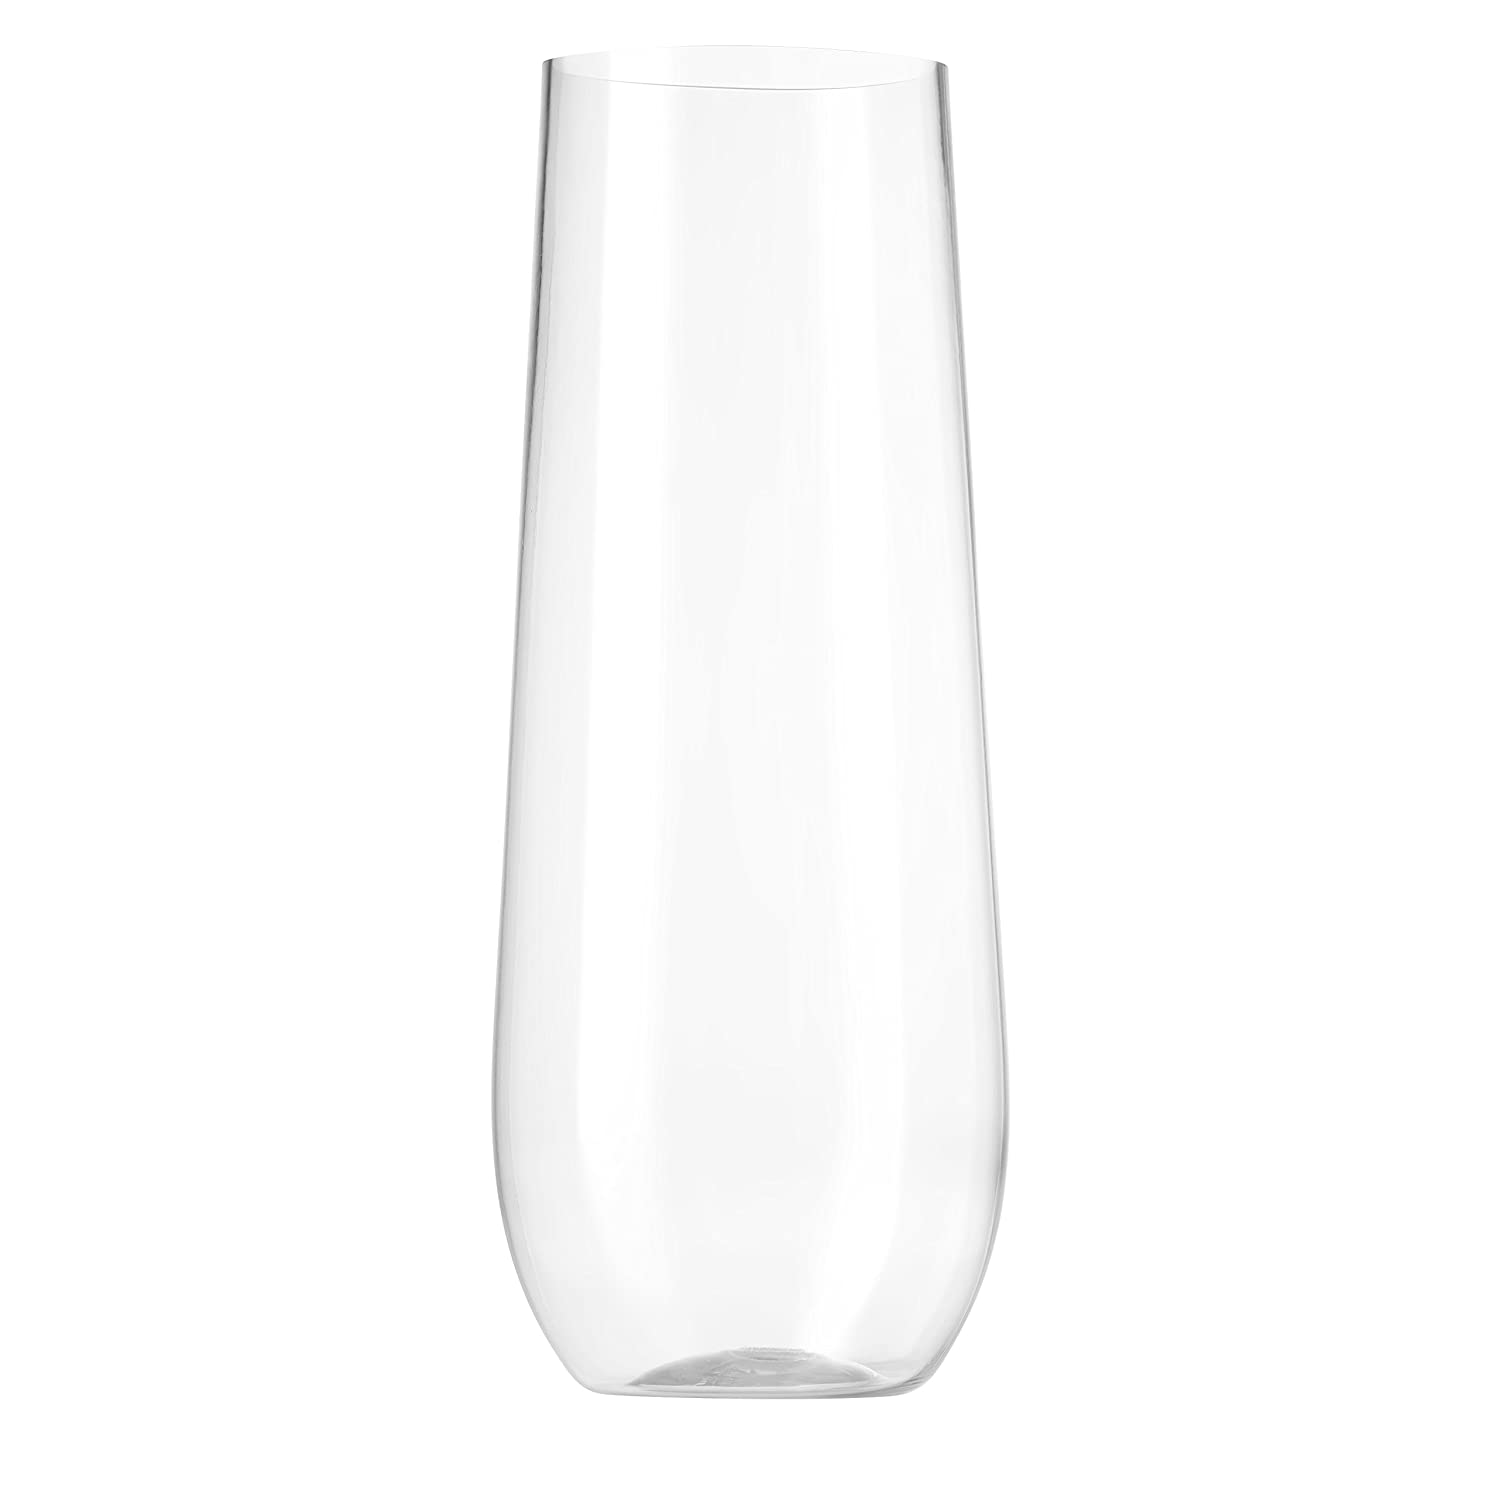 Munfix 24 Pack Stemless Plastic Champagne Flutes Disposable 9 Oz Clear Plastic Toasting Glasses Shatterproof Recyclable